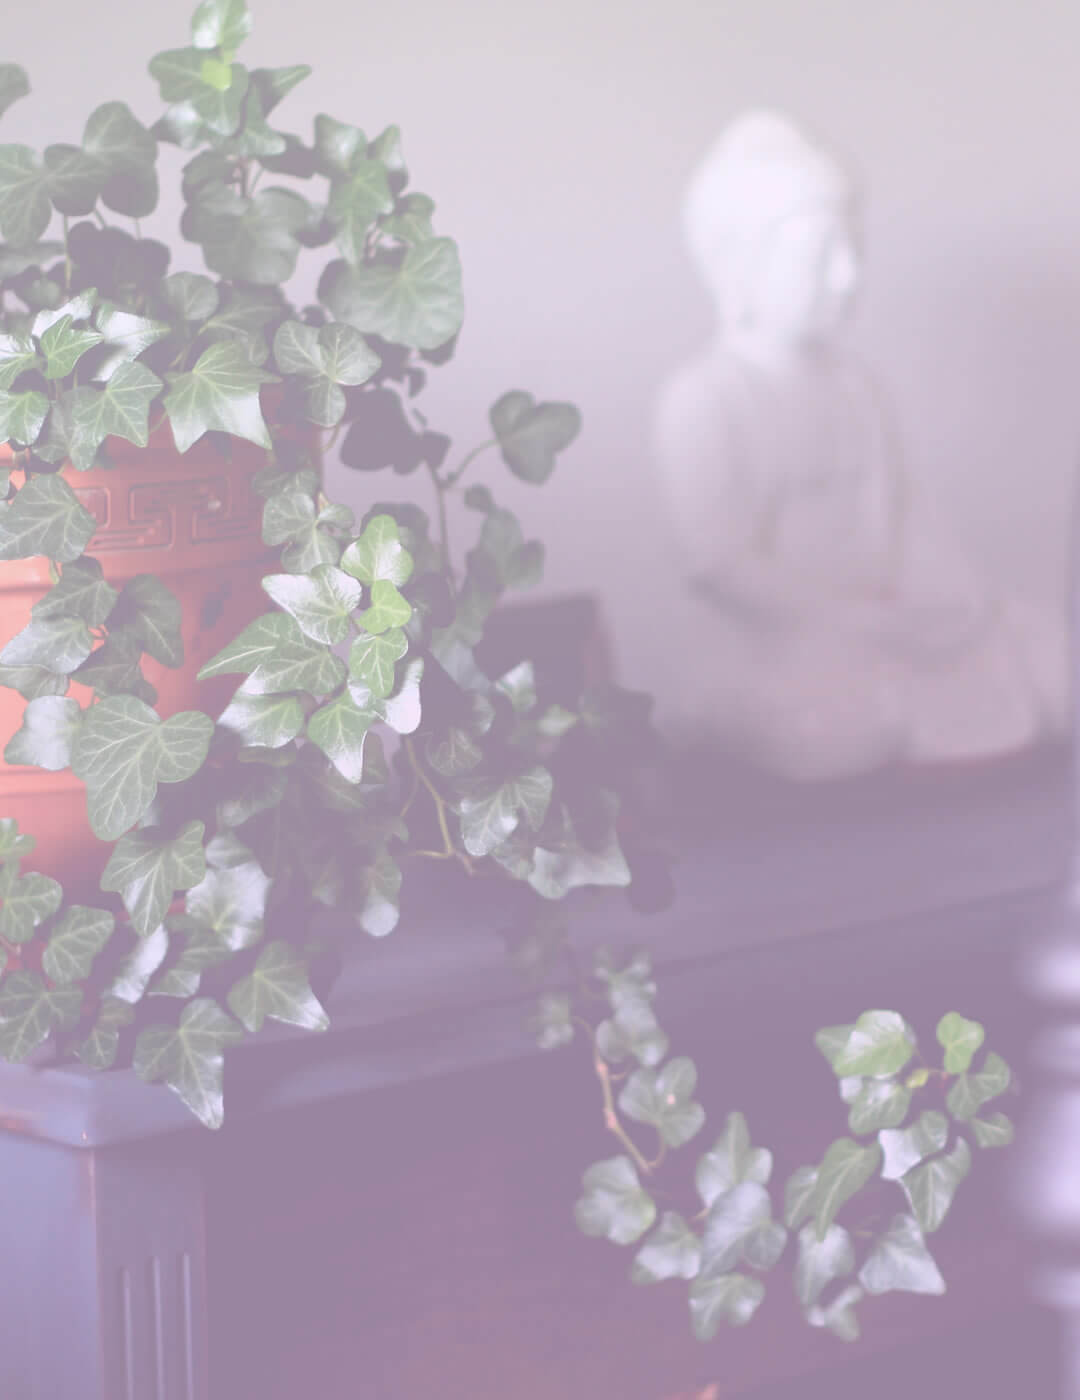 meditation room decorate with plants and Buddha statue